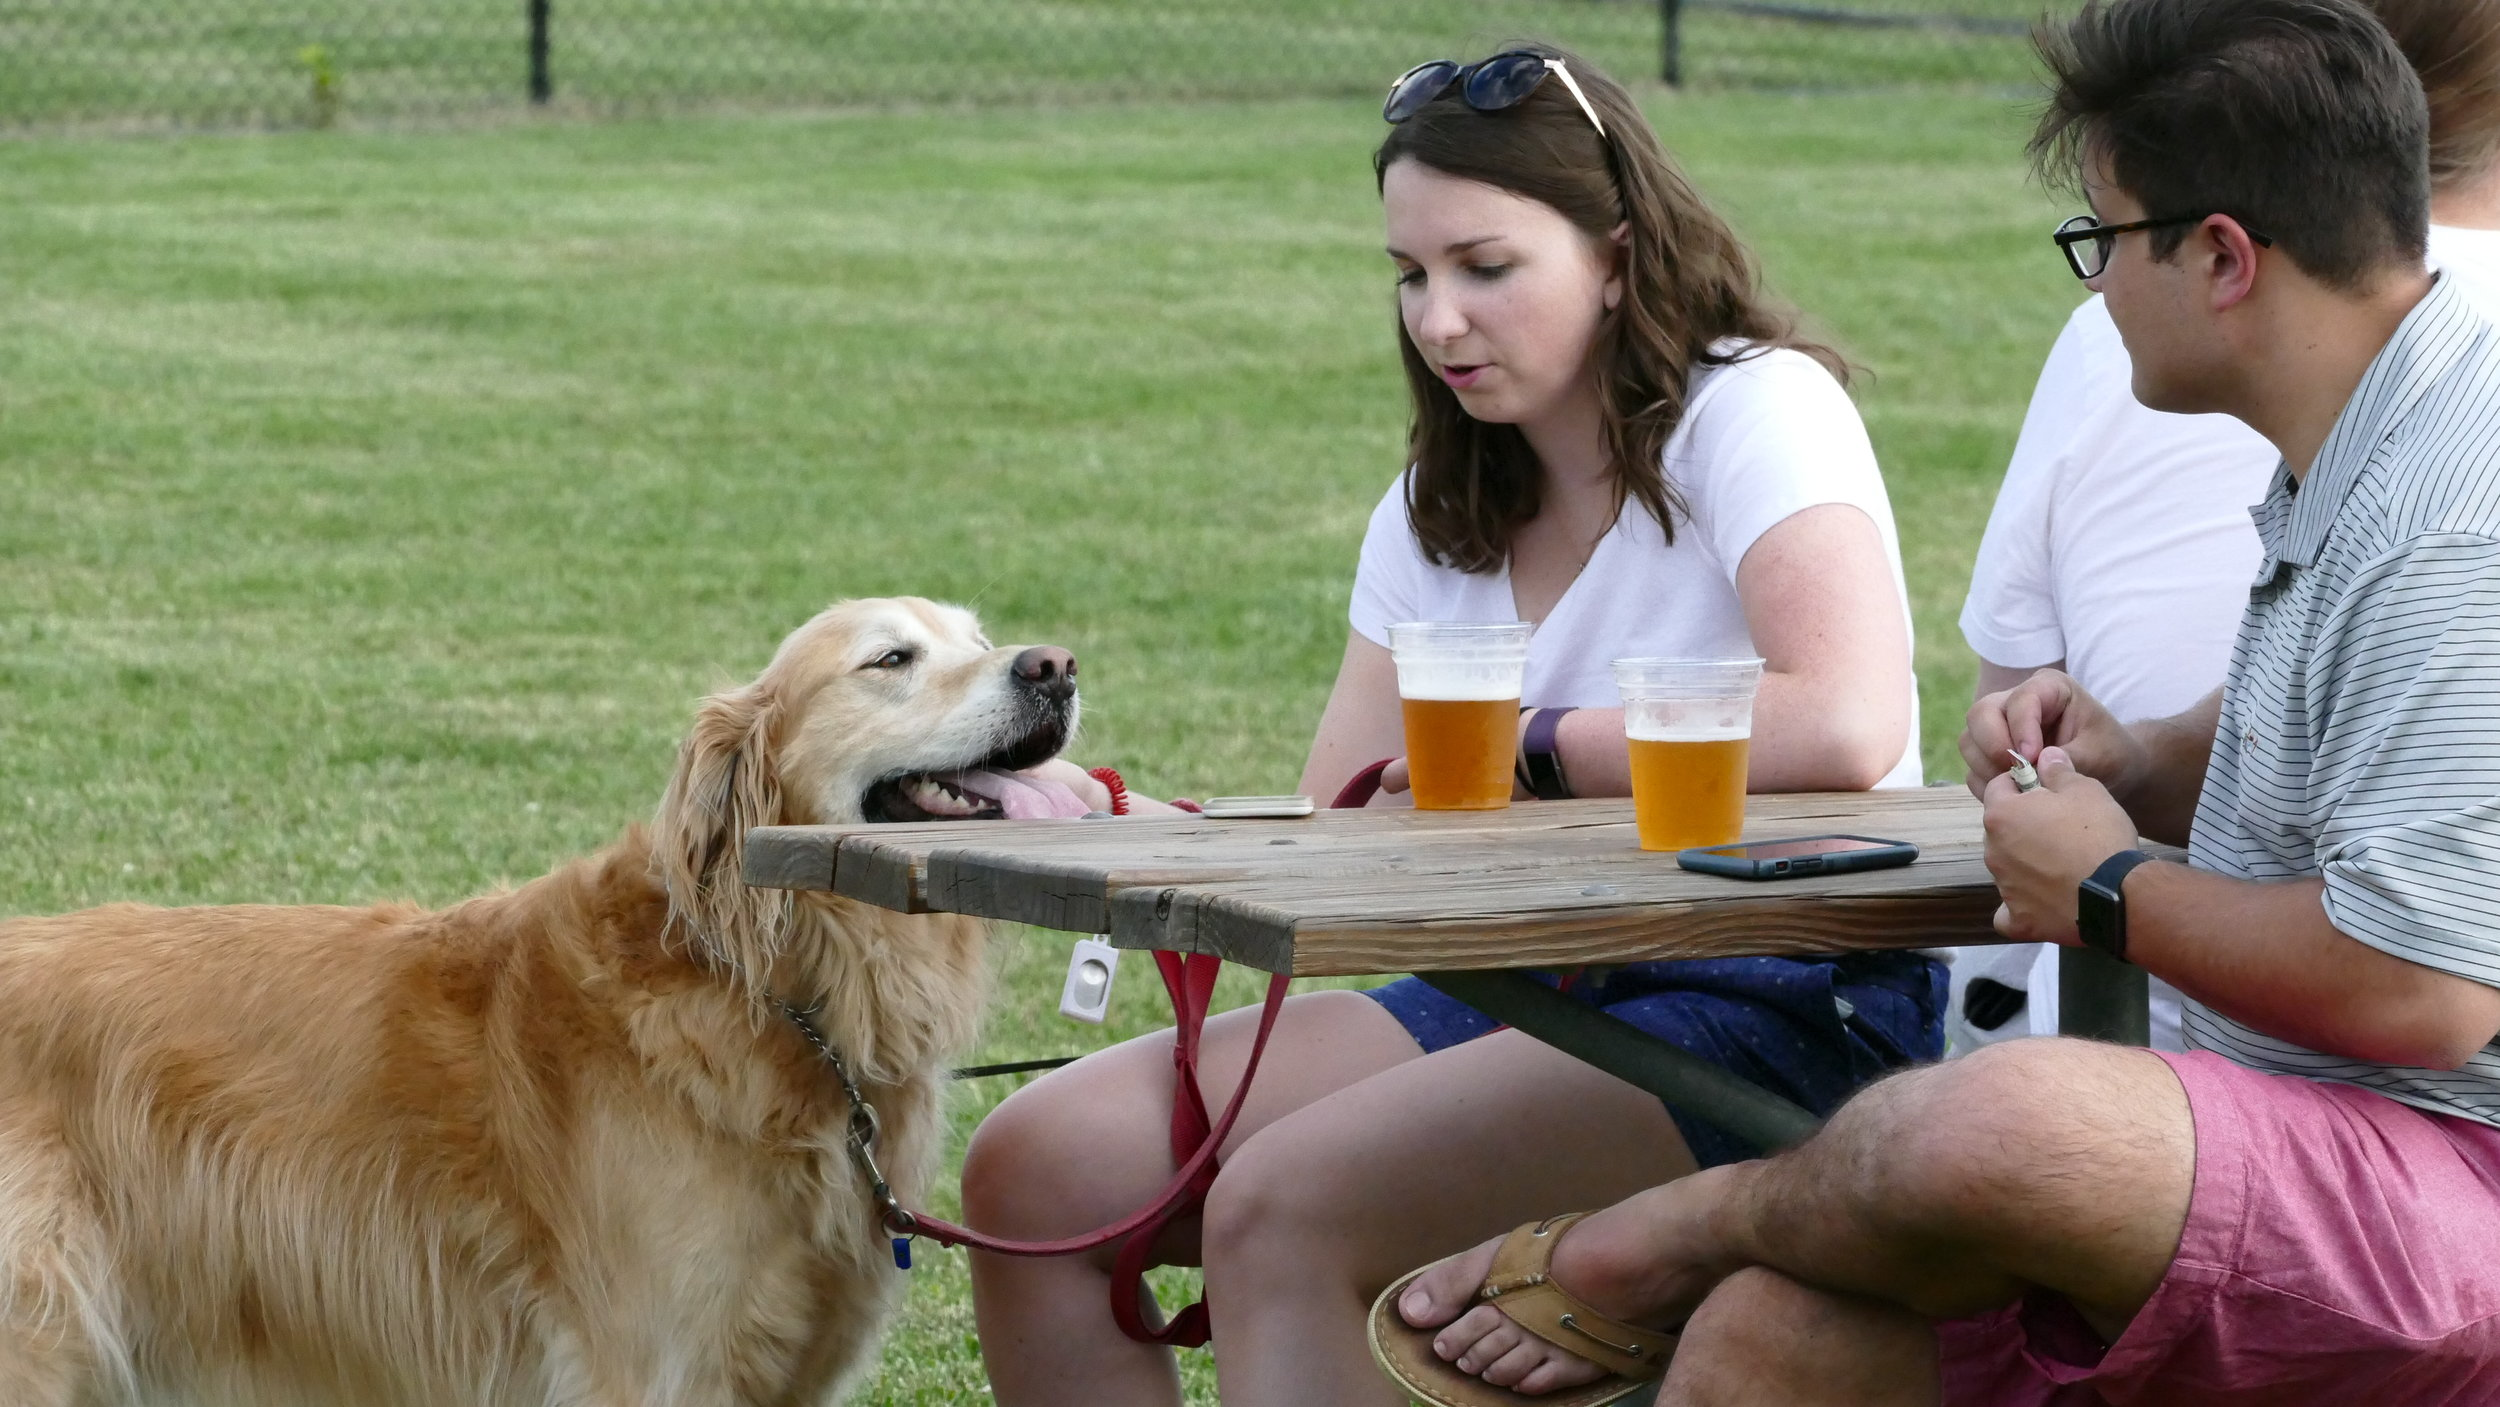 Millennials dogs and beer.JPG